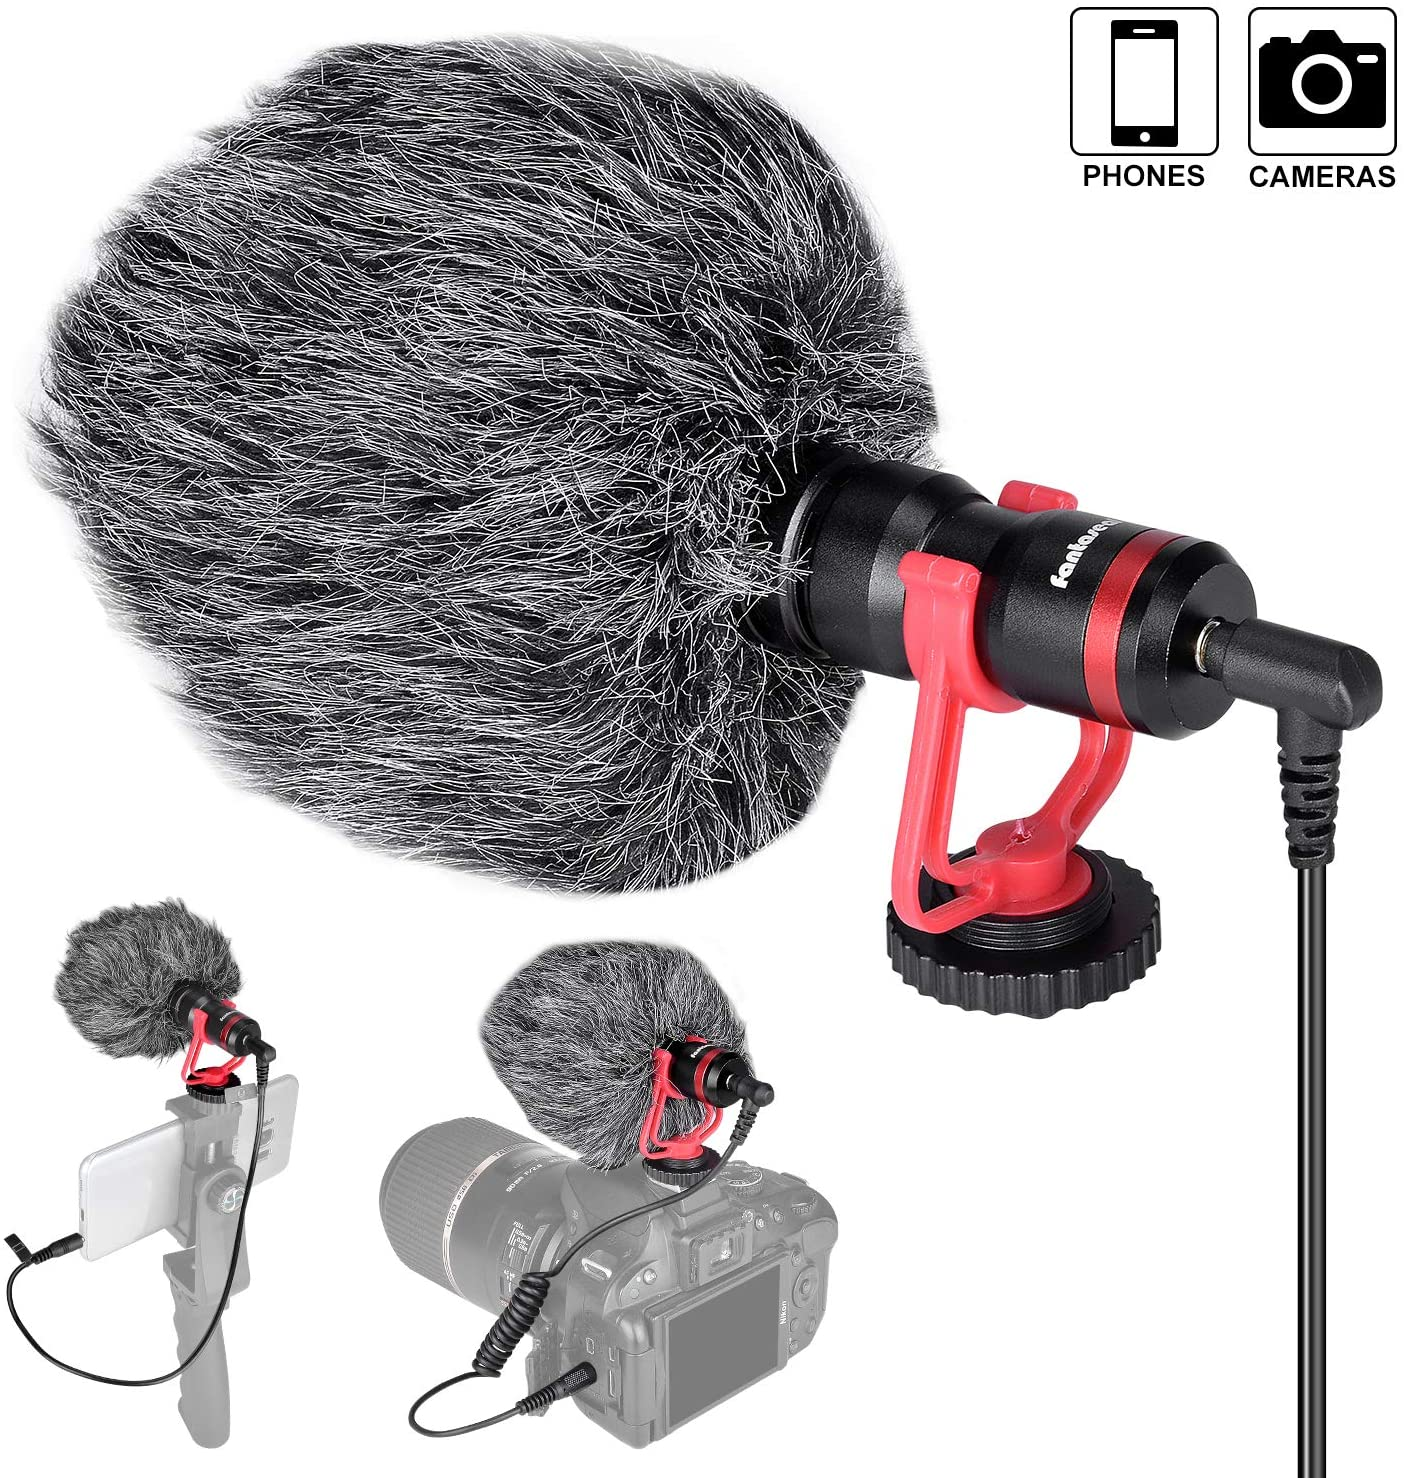 Professional Hi-sensitivity Microphone